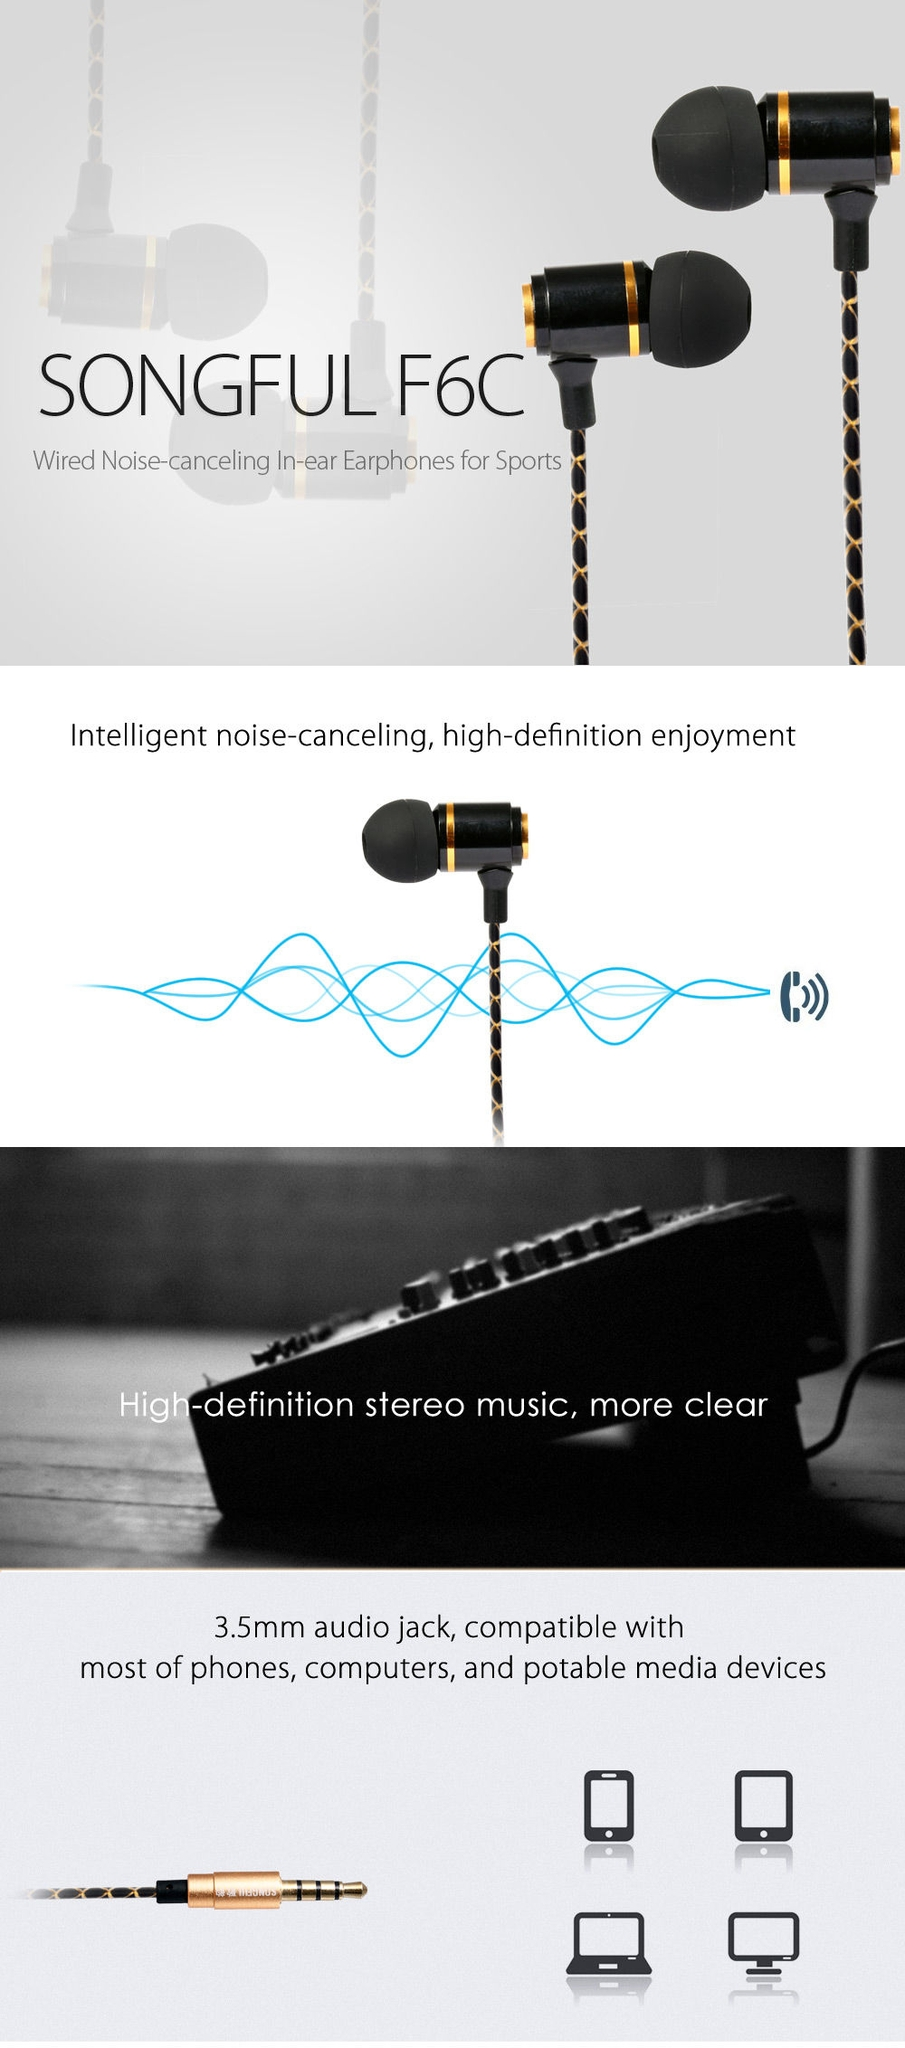 SONGFUL F6C Wired On-cord Control Noise-canceling In-ear Earphones Built-in Mic